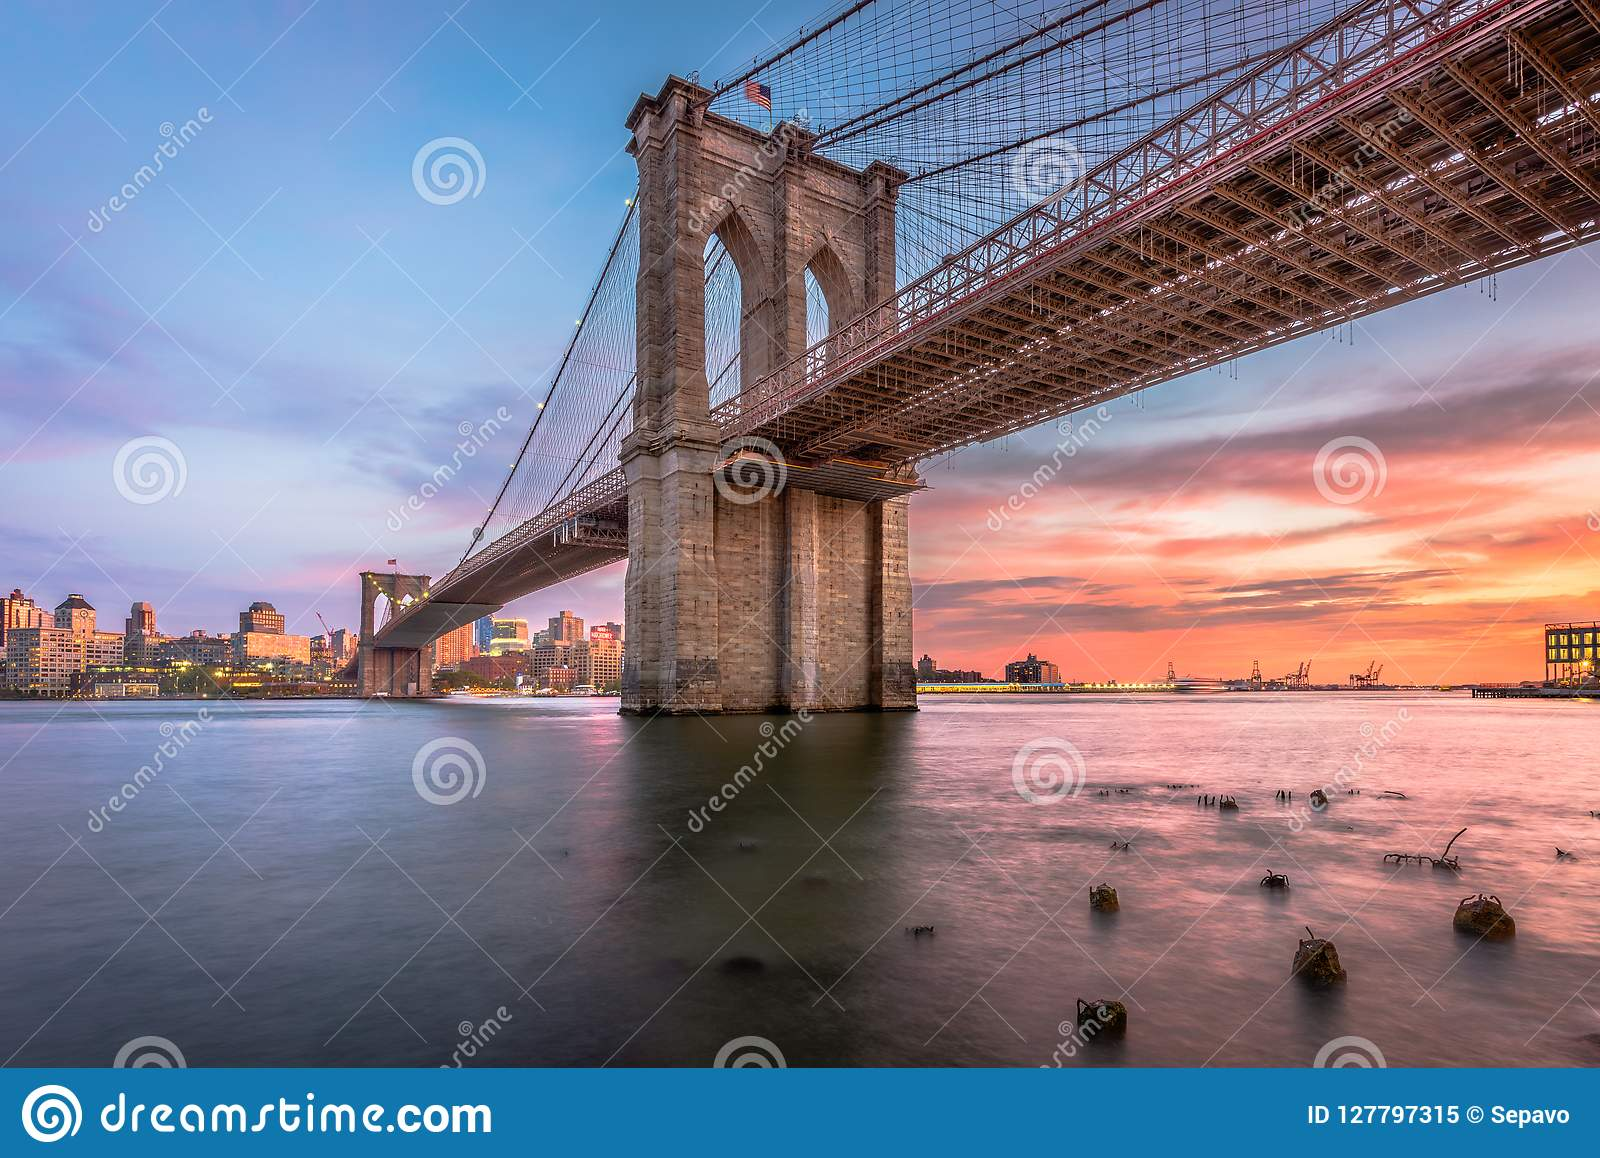 Ponte de Brooklyn New York City no crepúsculo